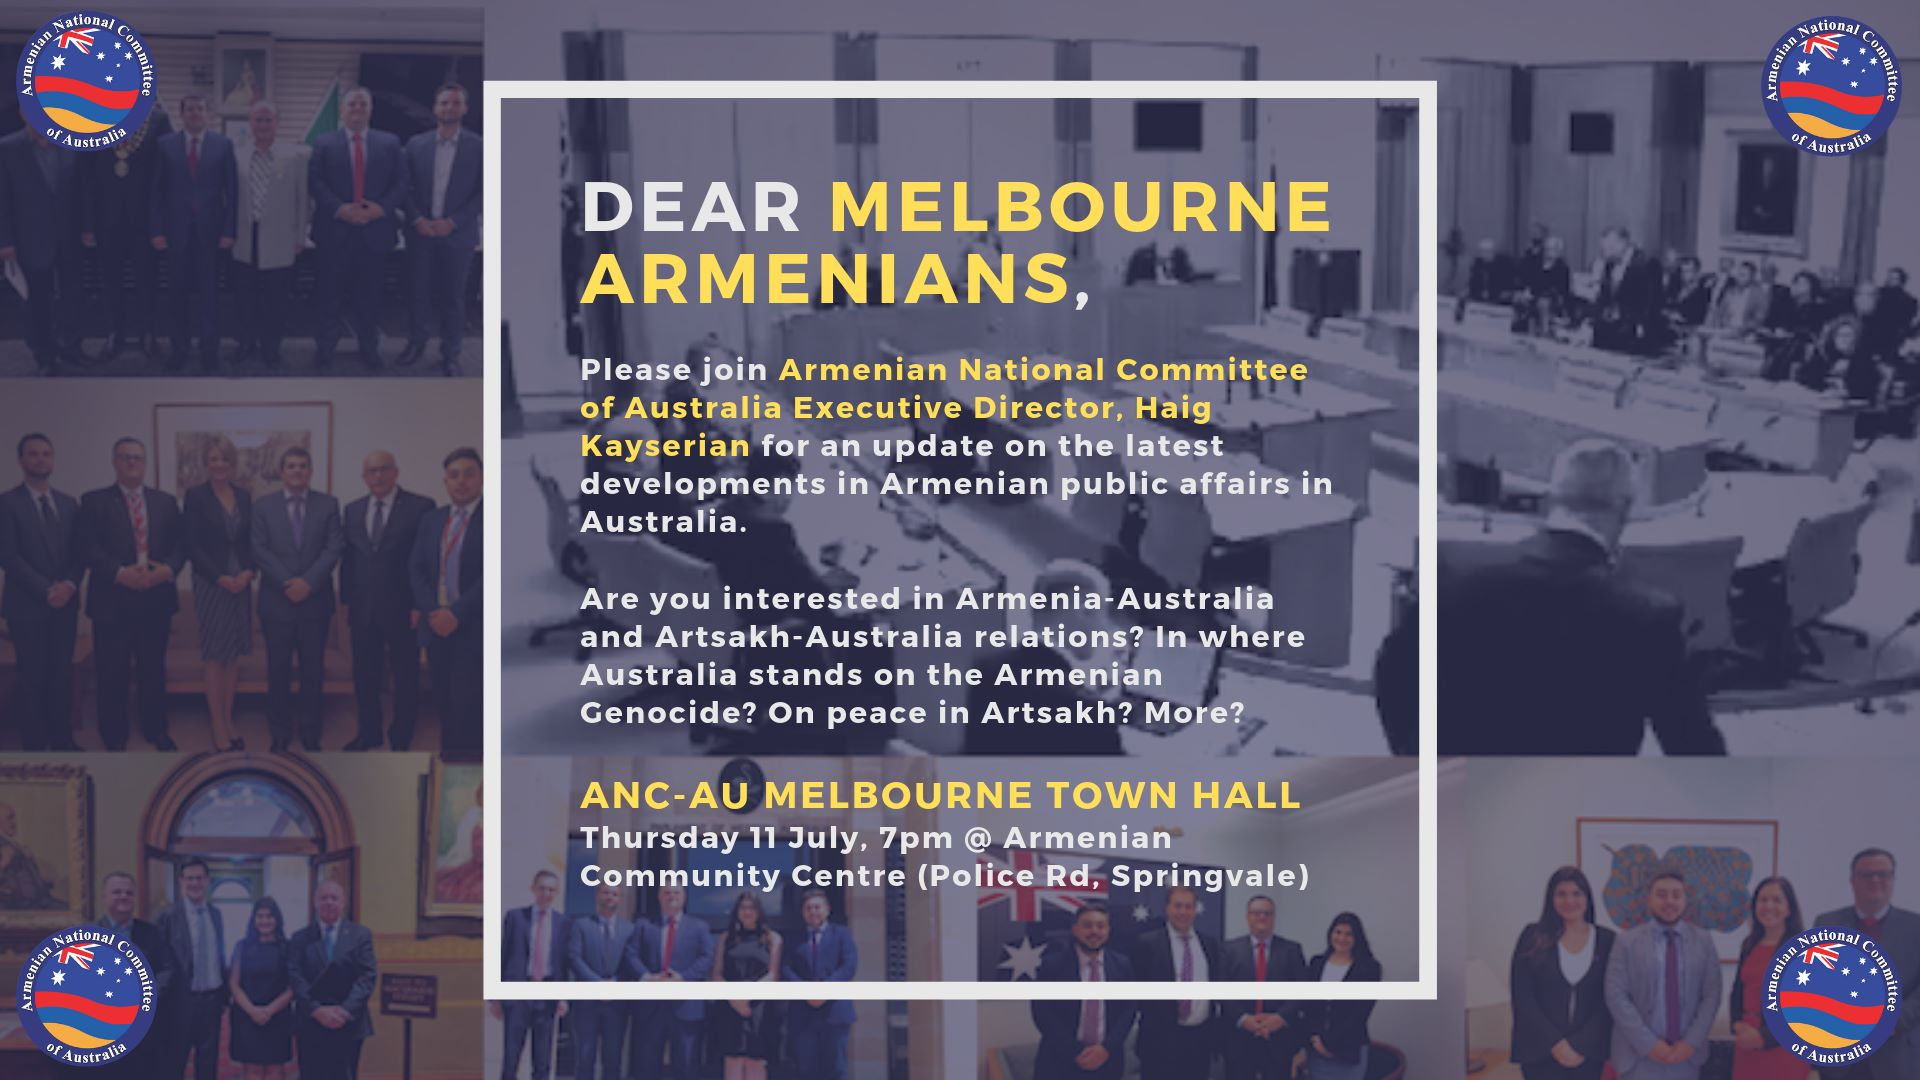 Armenian National Committee to Meet Melbourne Armenians at Town Hall